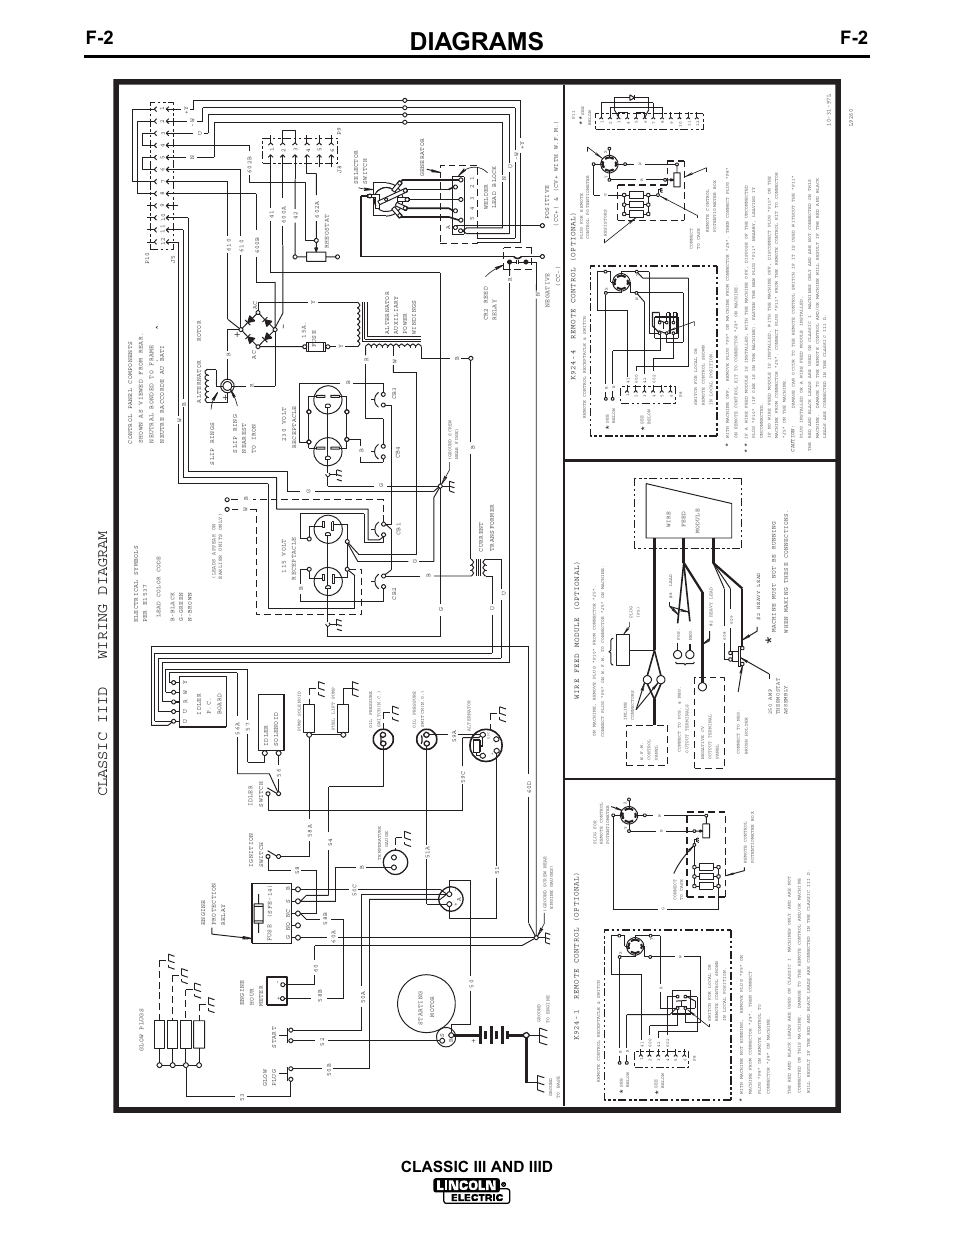 Electric Wiring Diagram For G 50a Diagrams Classic Iii And Iiid Lincoln Im529 D User Manual Page 27 34